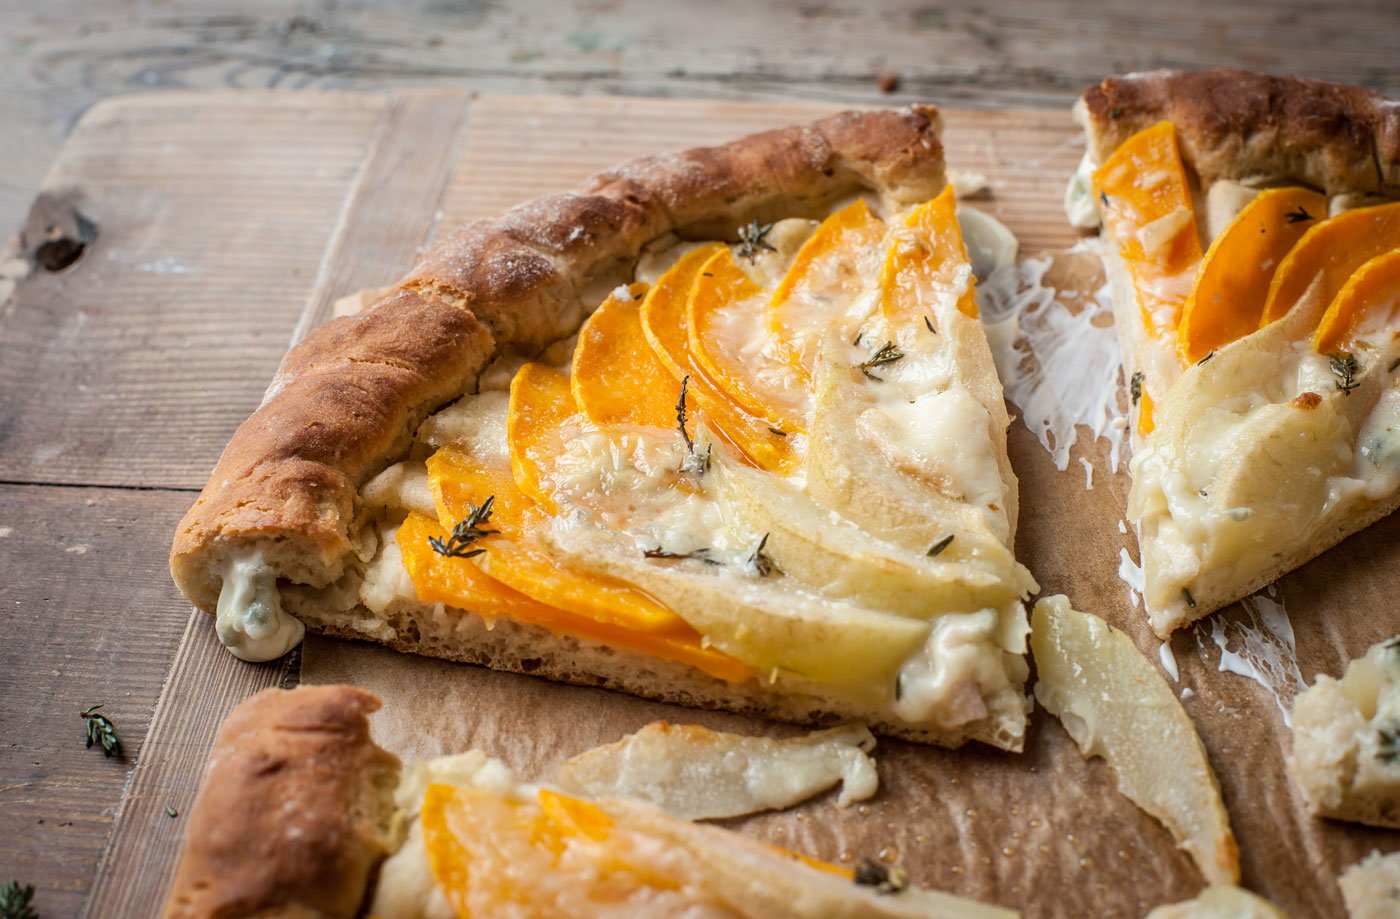 Adam Byatt's butternut squash, pear and gorgonzola flatbread recipe